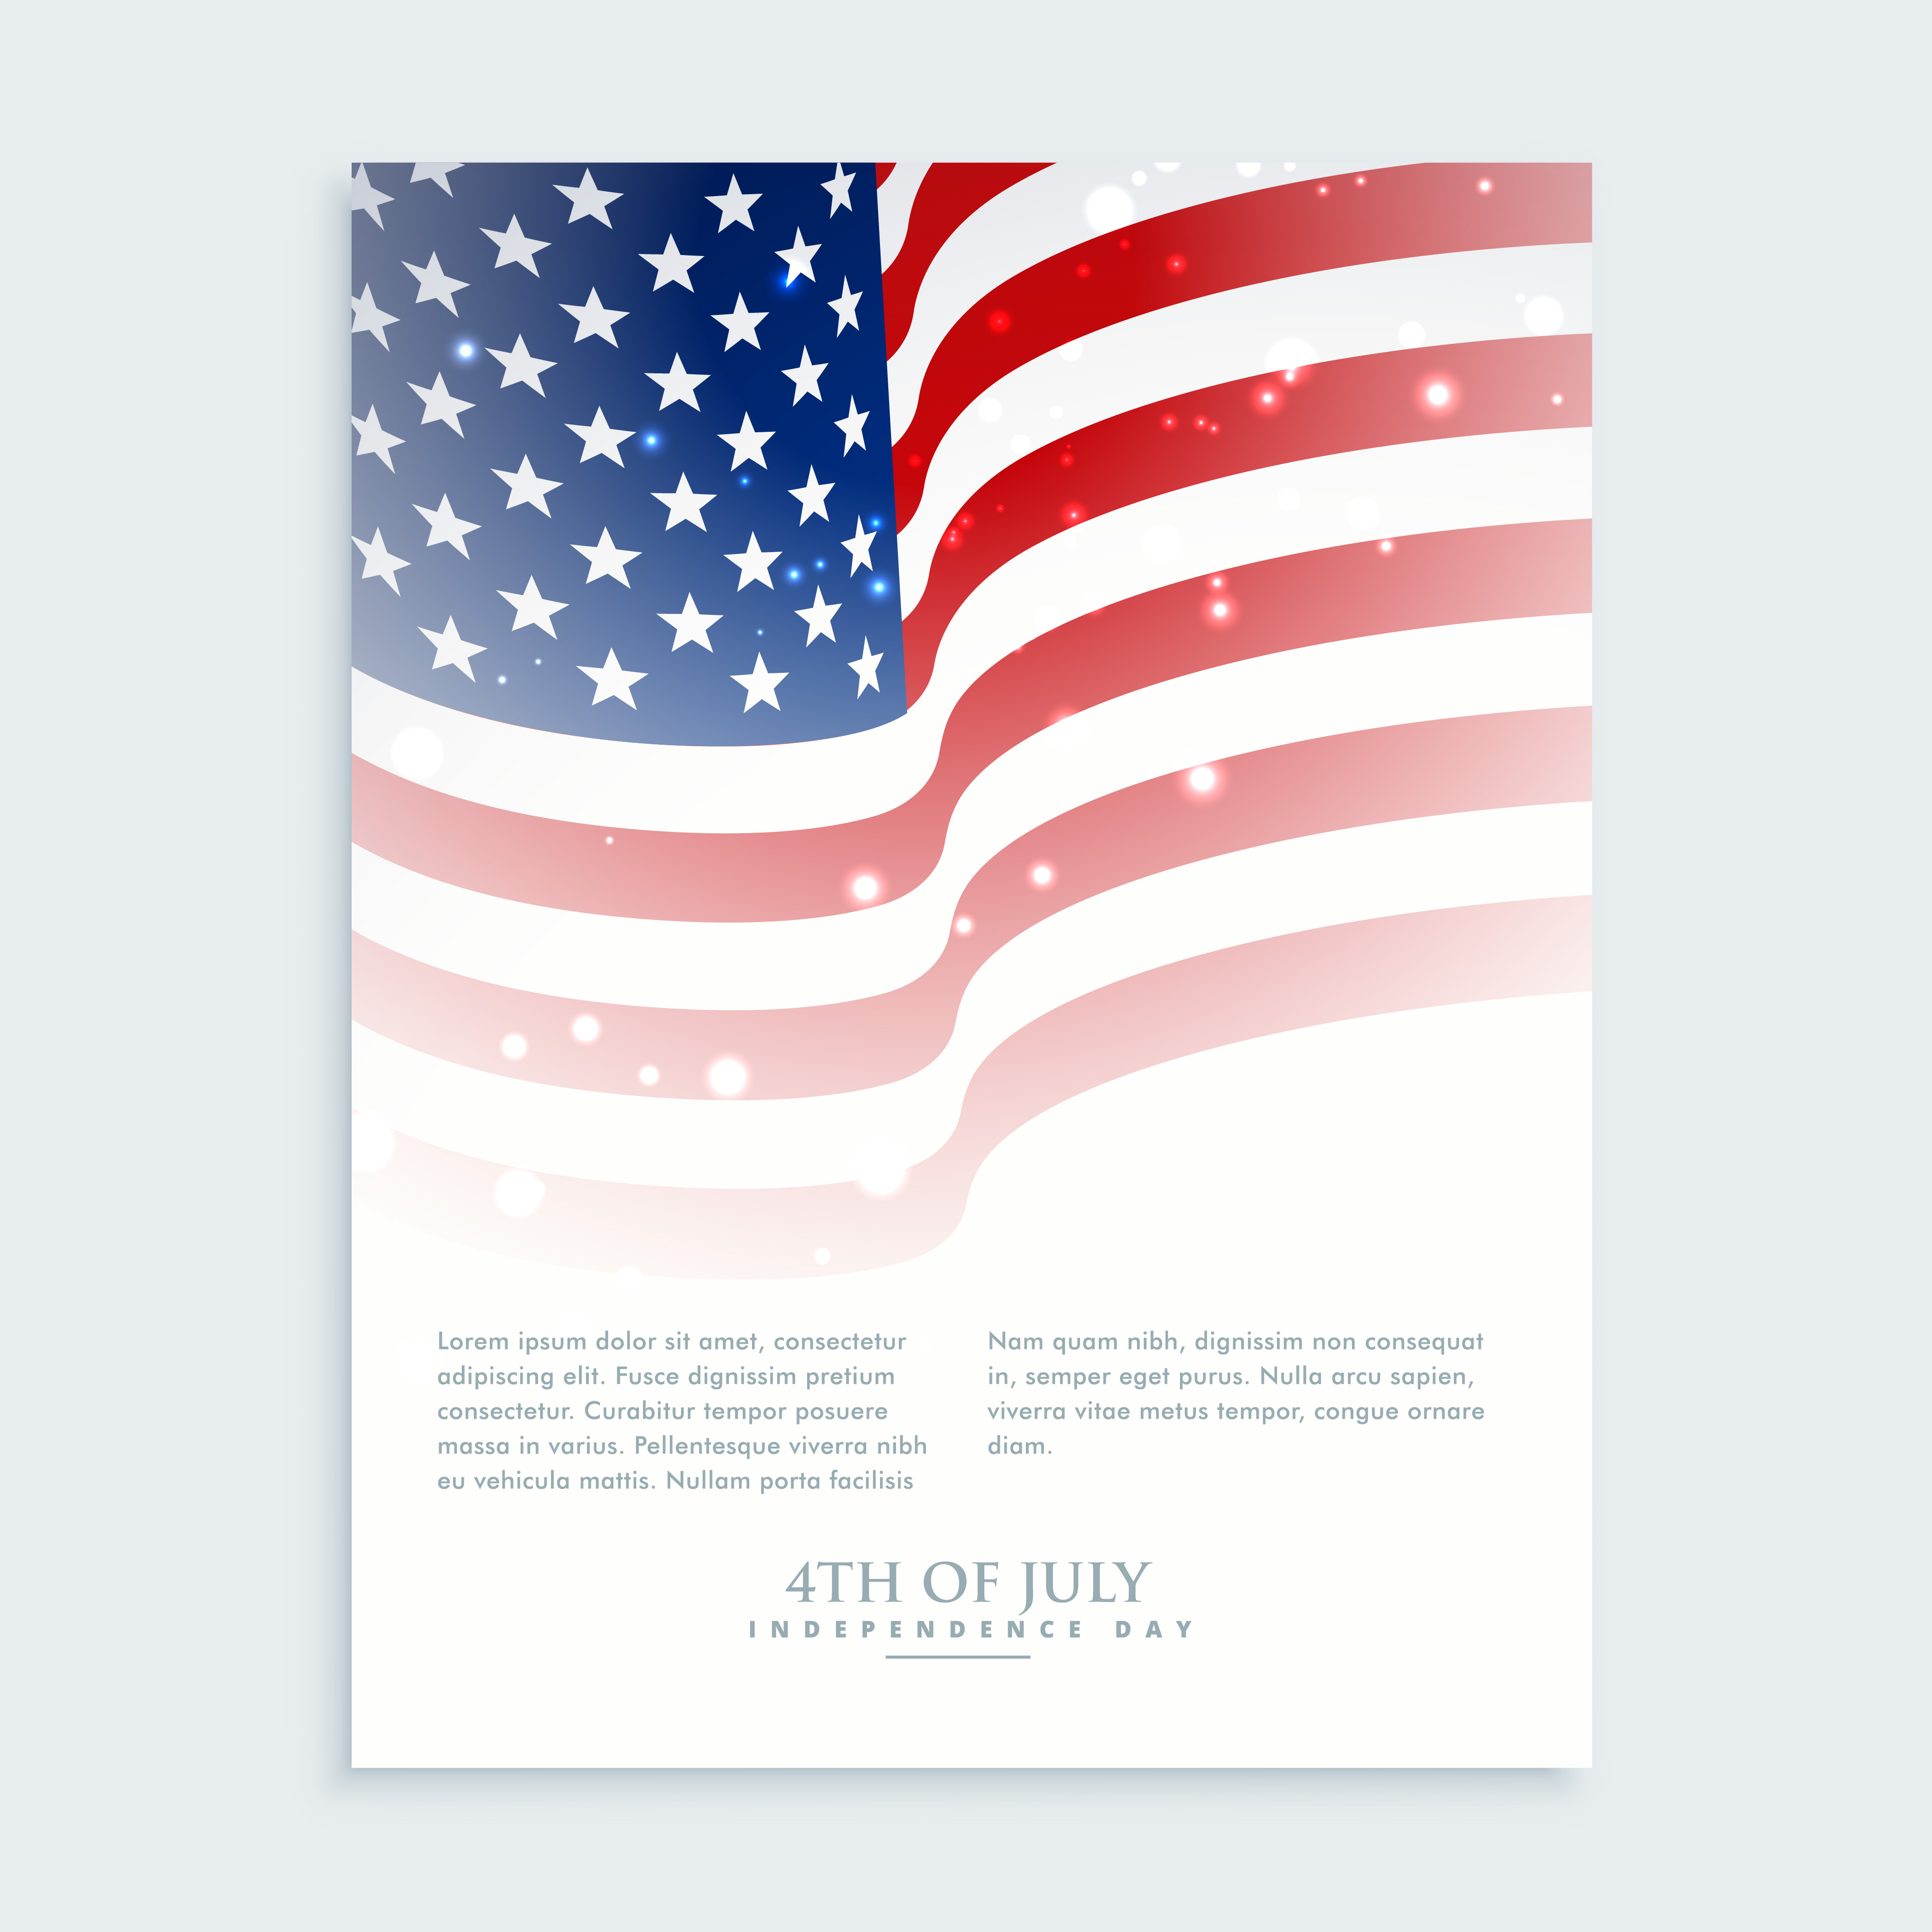 flyer of 4th of july with smerican flag